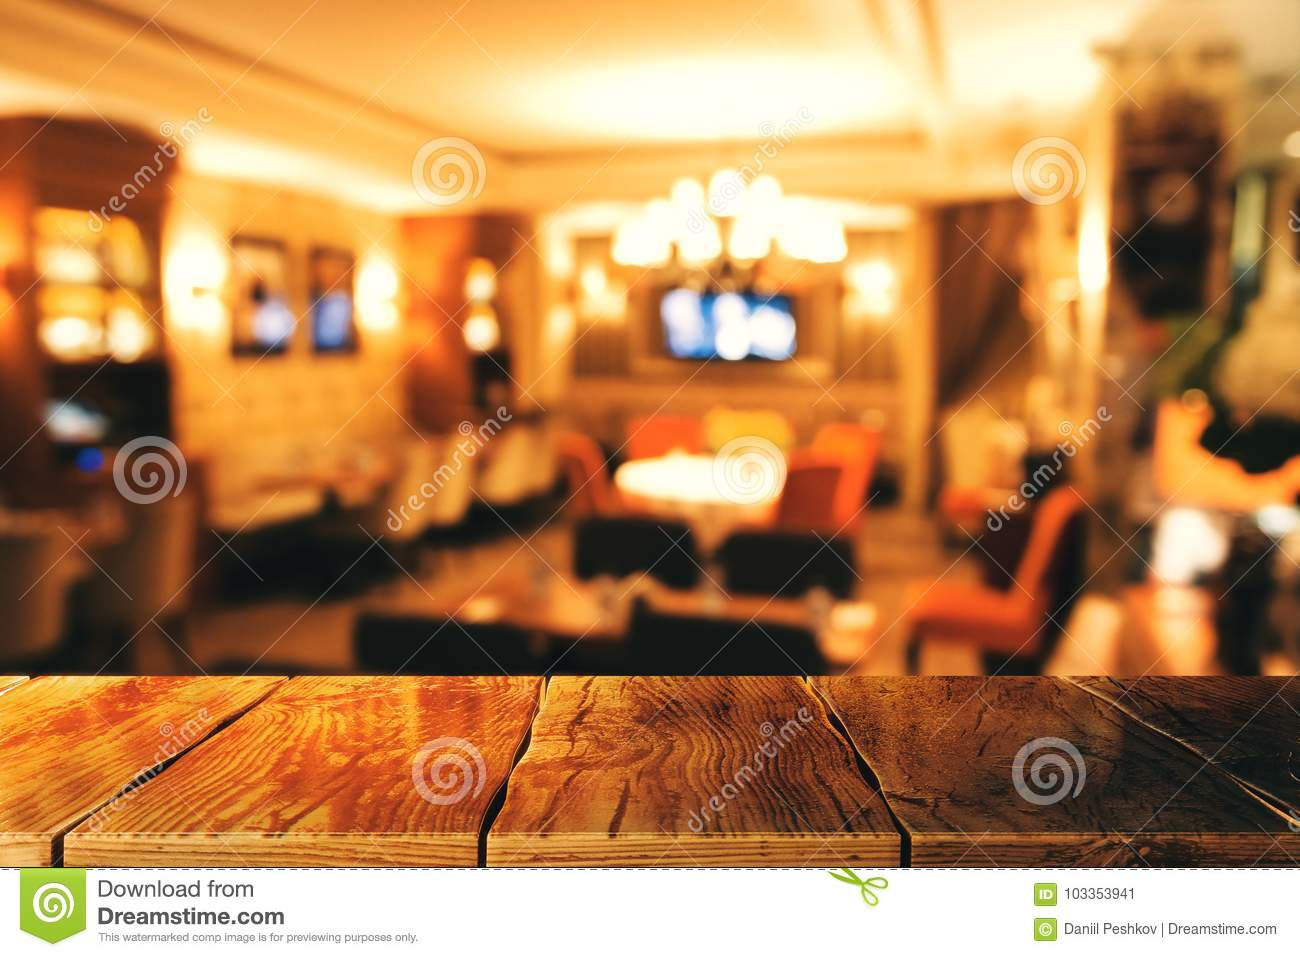 Creative Blurry Restaurant Texture Stock Image Image Of Blur Counter 103353941